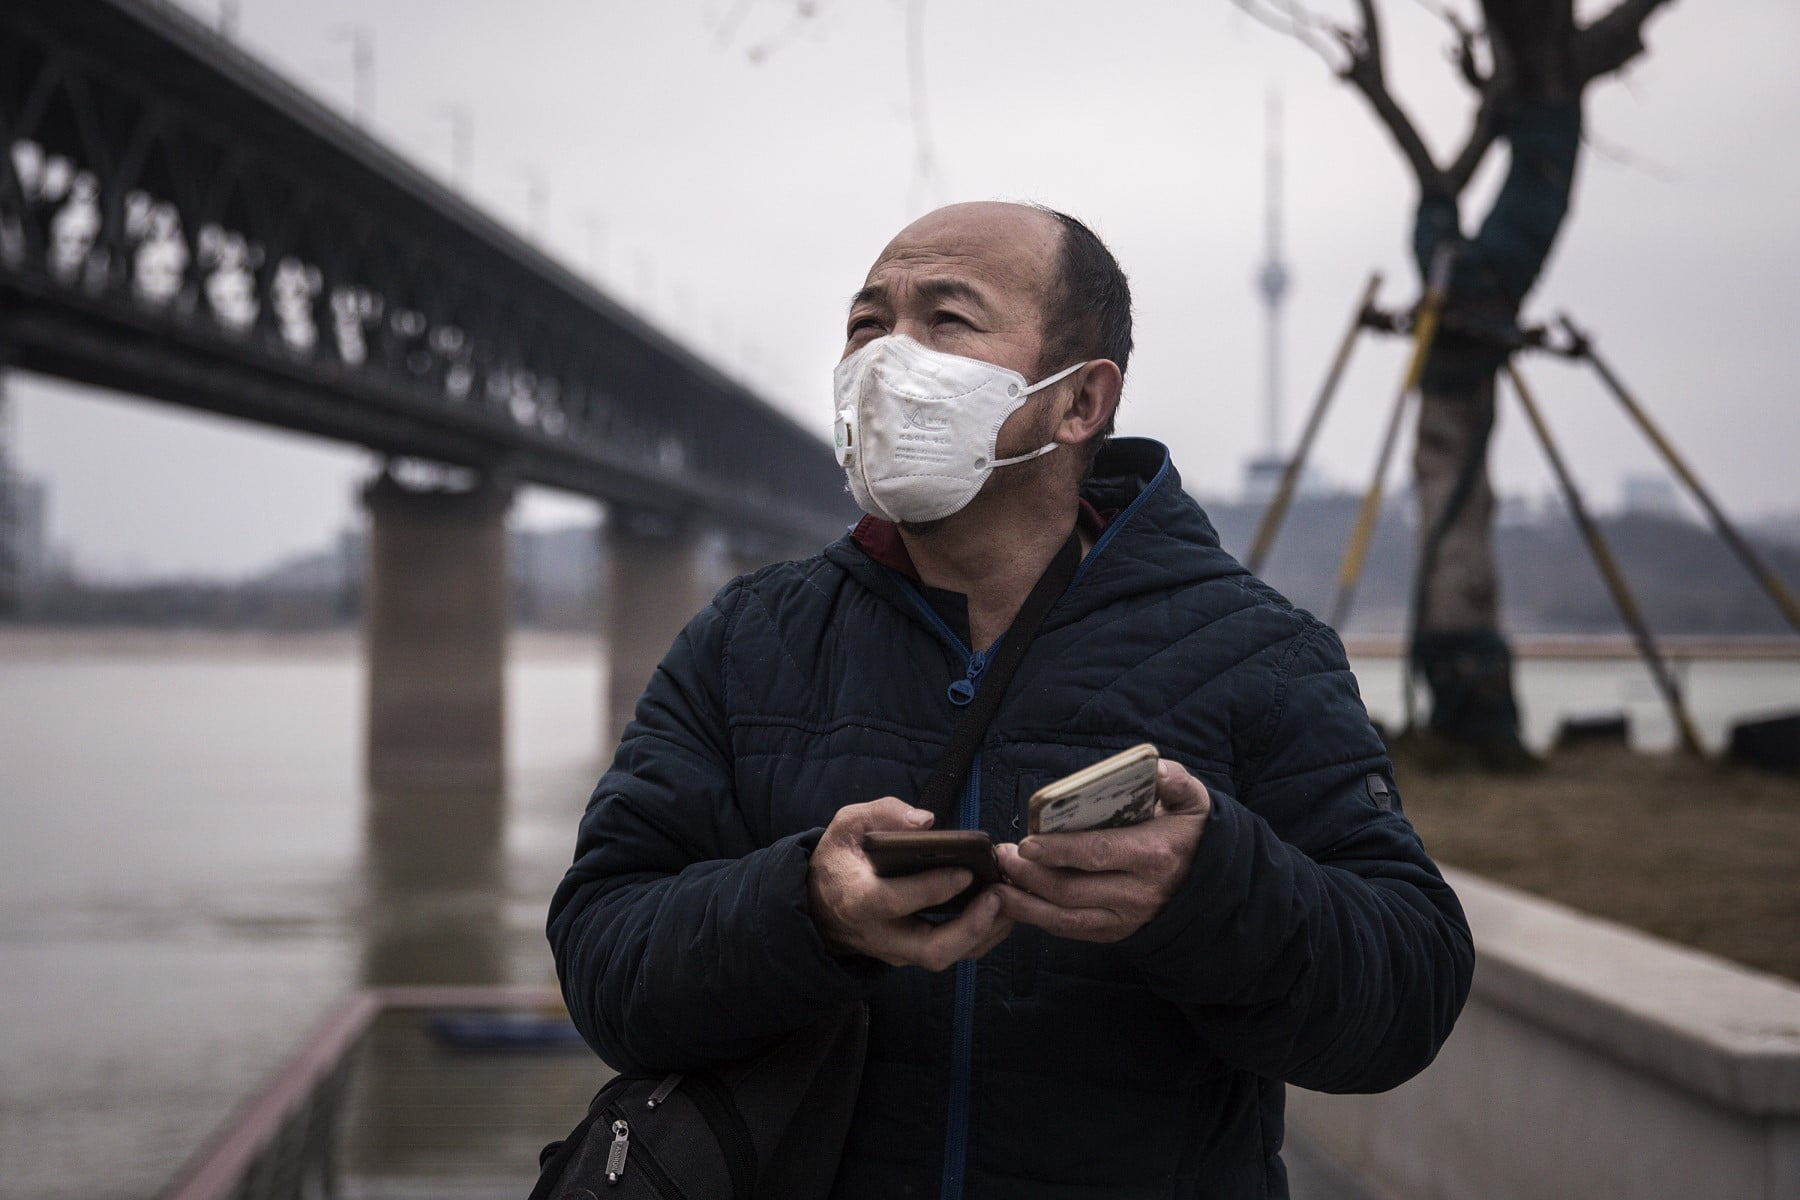 Mobile games see coronoavirus surge as Chinese citizens stay home